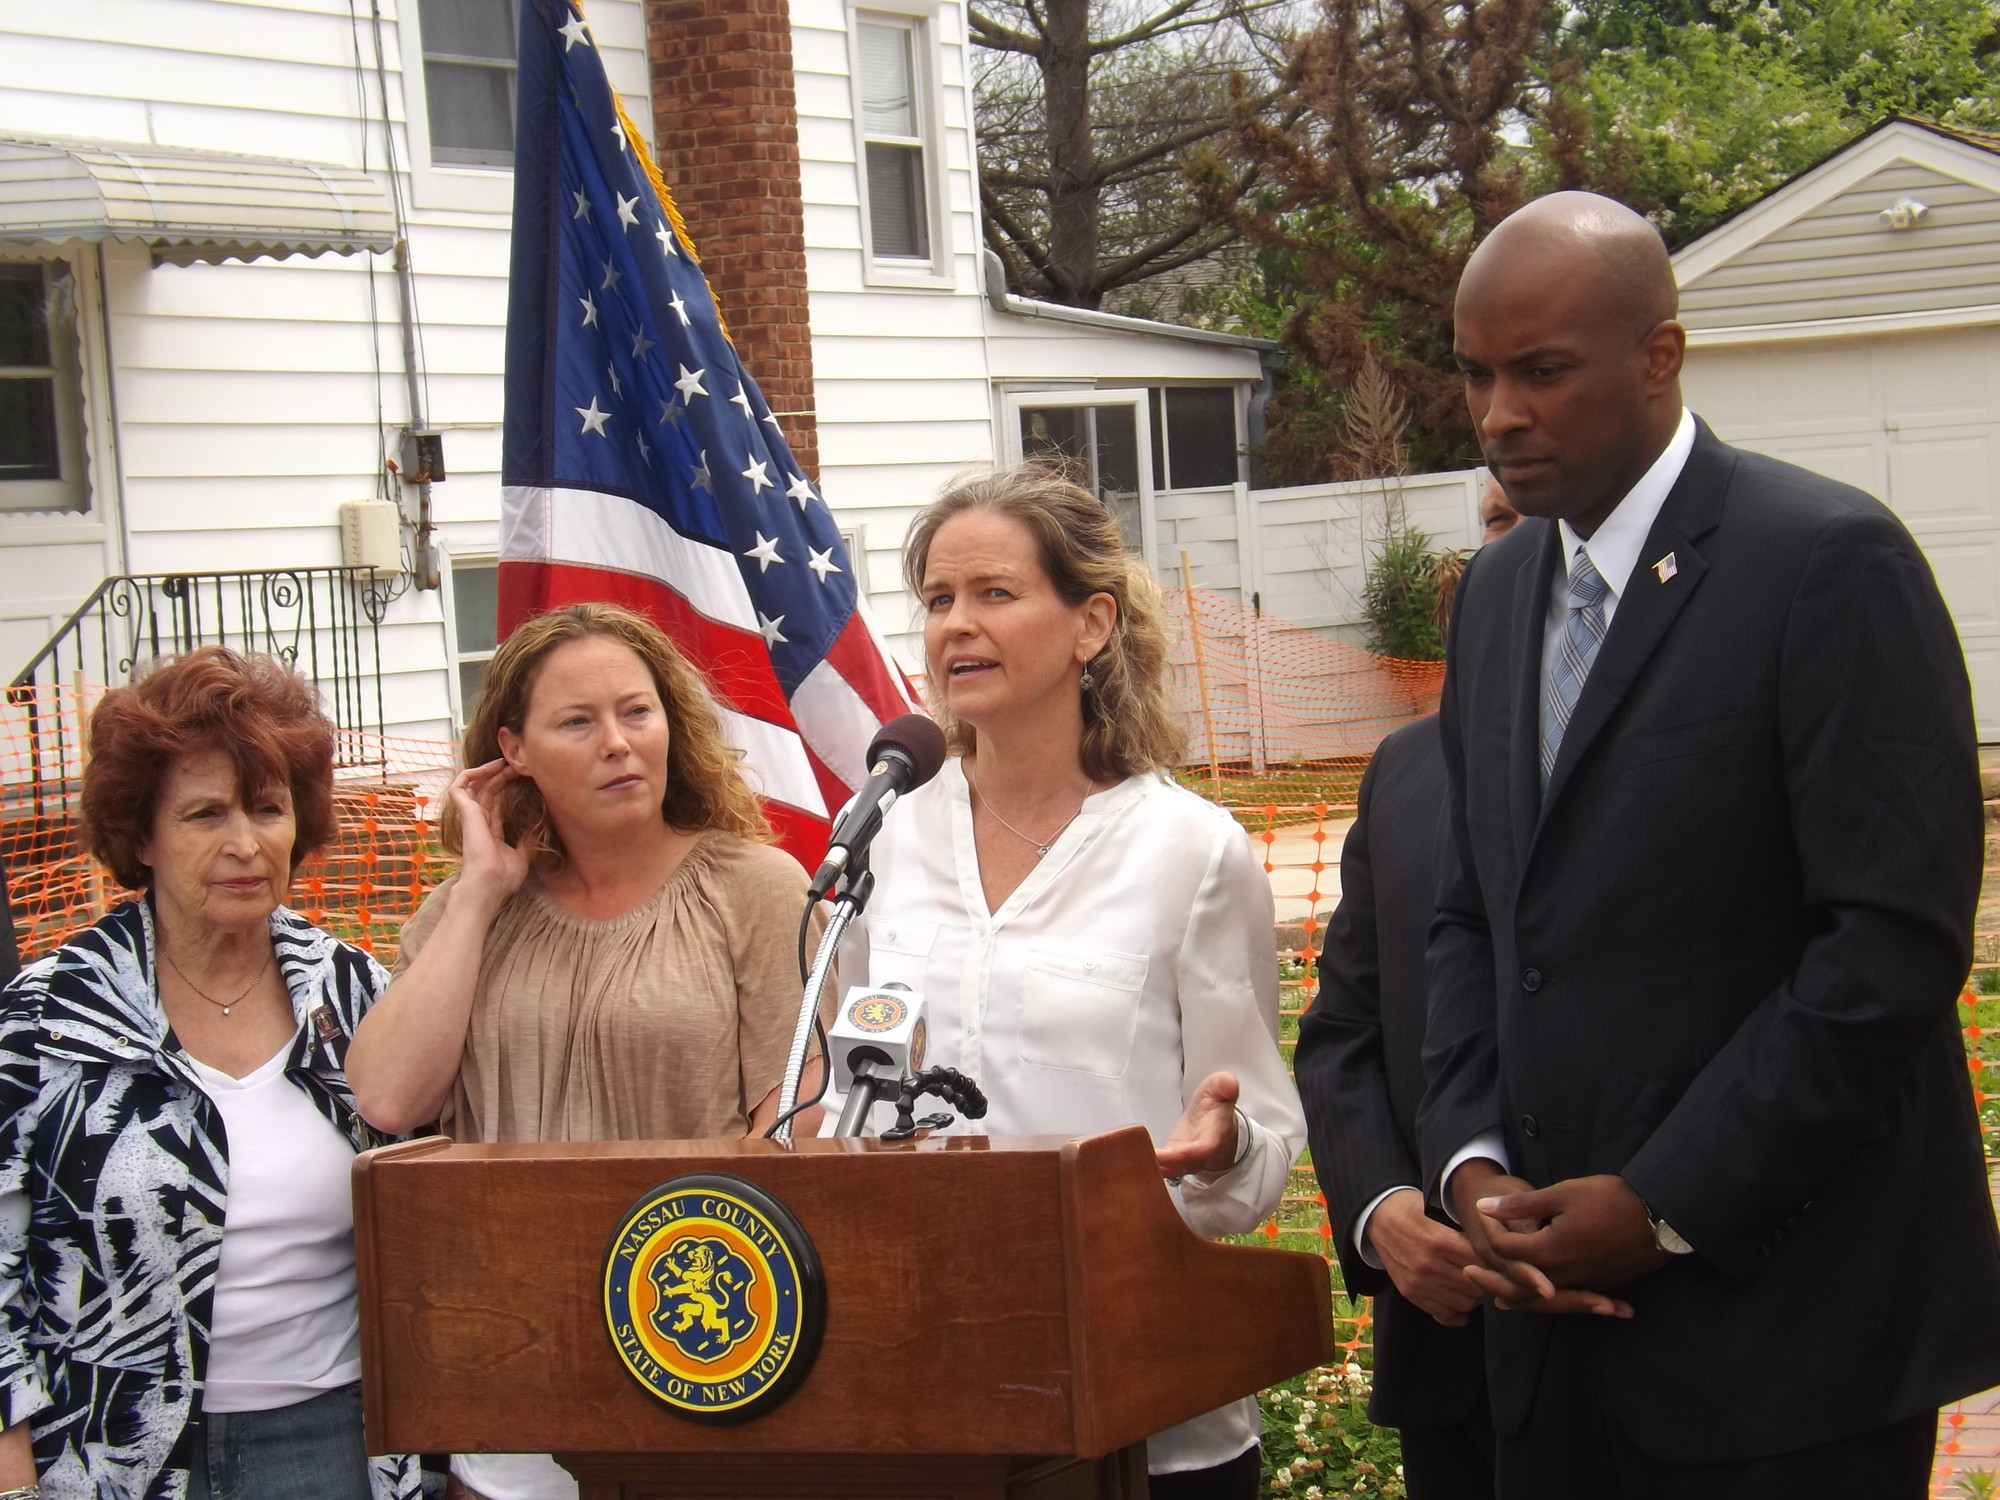 Legislator Laura Curran, second from right, and her colleagues in the County Legislature, including Norma Gonsalves, far left, and Kevan Abrahams, at a press conference in front of the property of East Rockaway resident Theresa Gaffney.